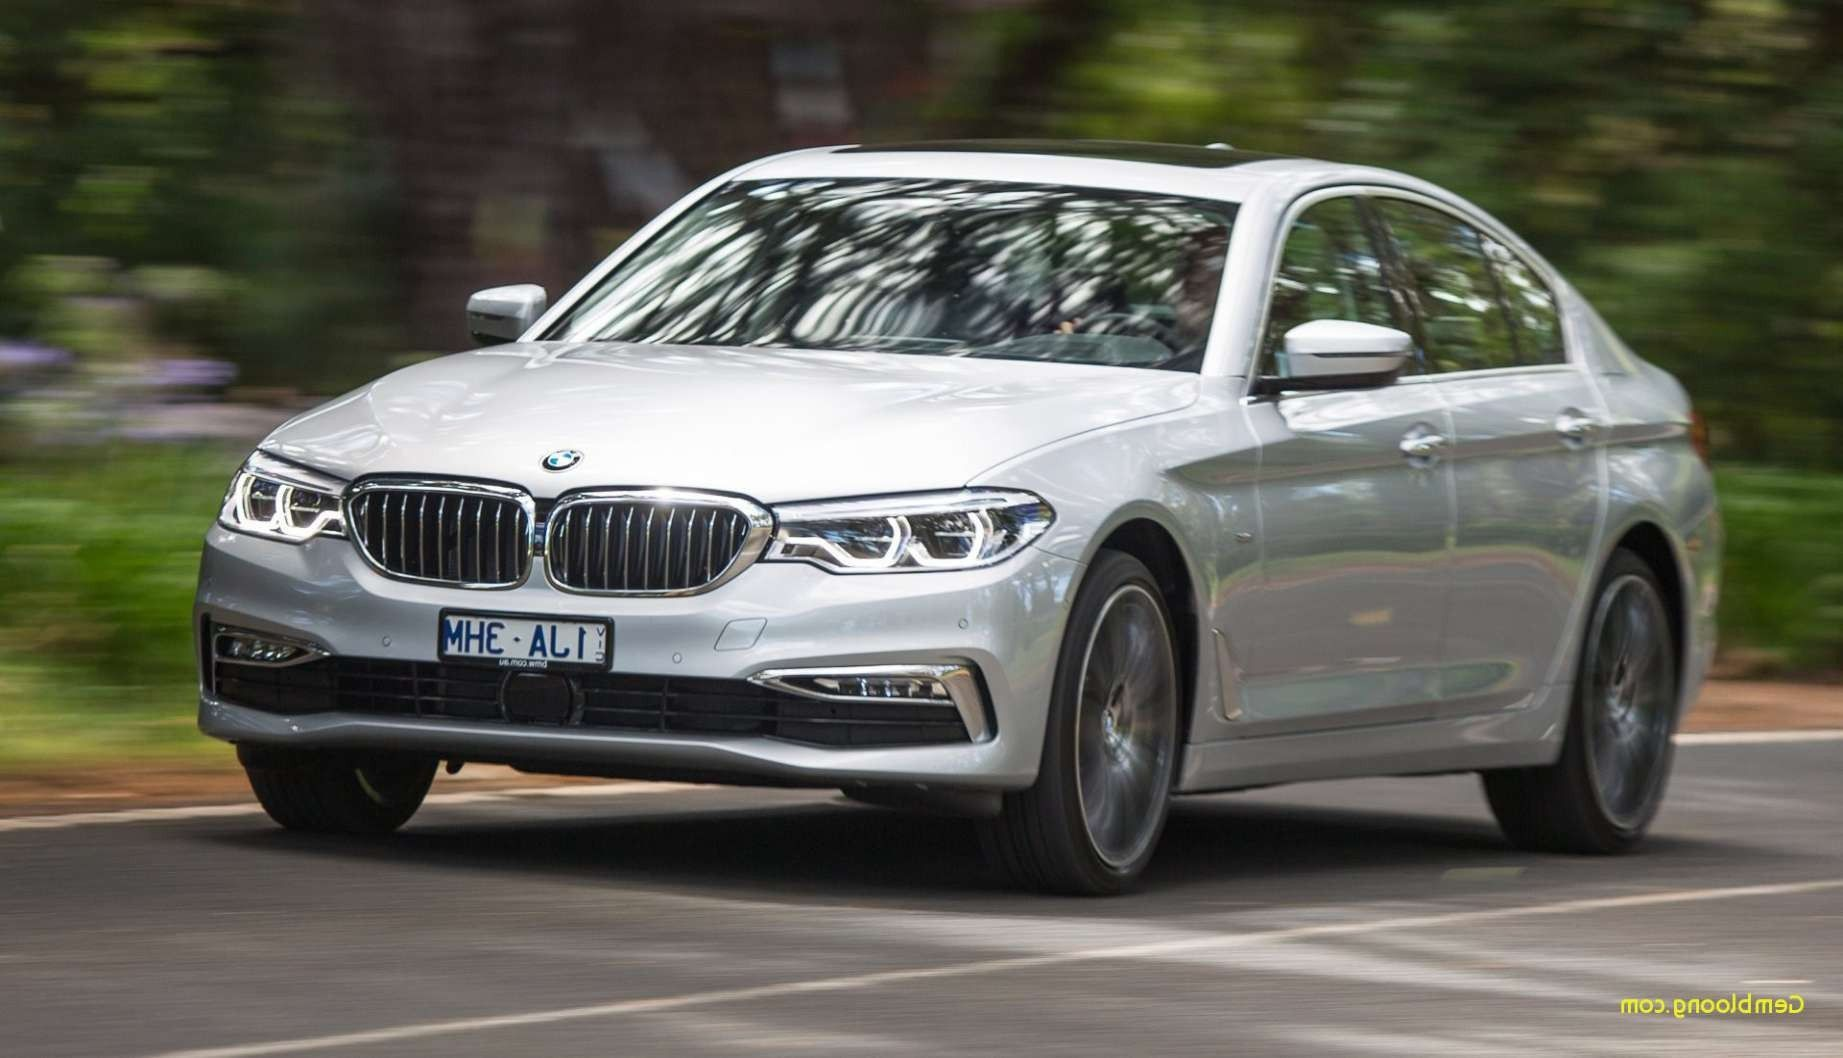 2019 7 Series Bmw Check More At Http Www New Cars Club 2018 10